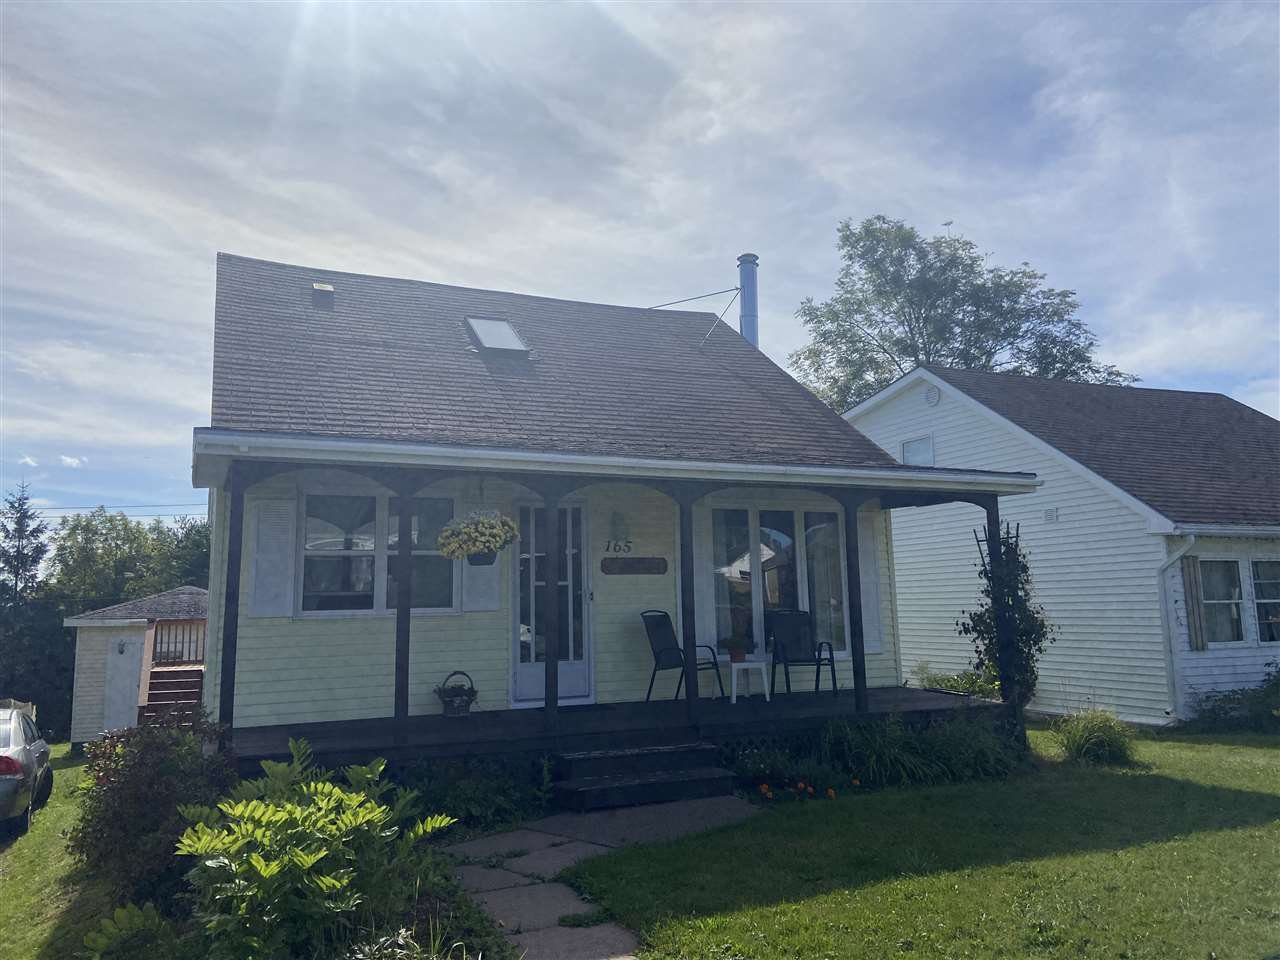 Main Photo: 165 Poplar Street in Pictou: 107-Trenton,Westville,Pictou Residential for sale (Northern Region)  : MLS®# 202018099